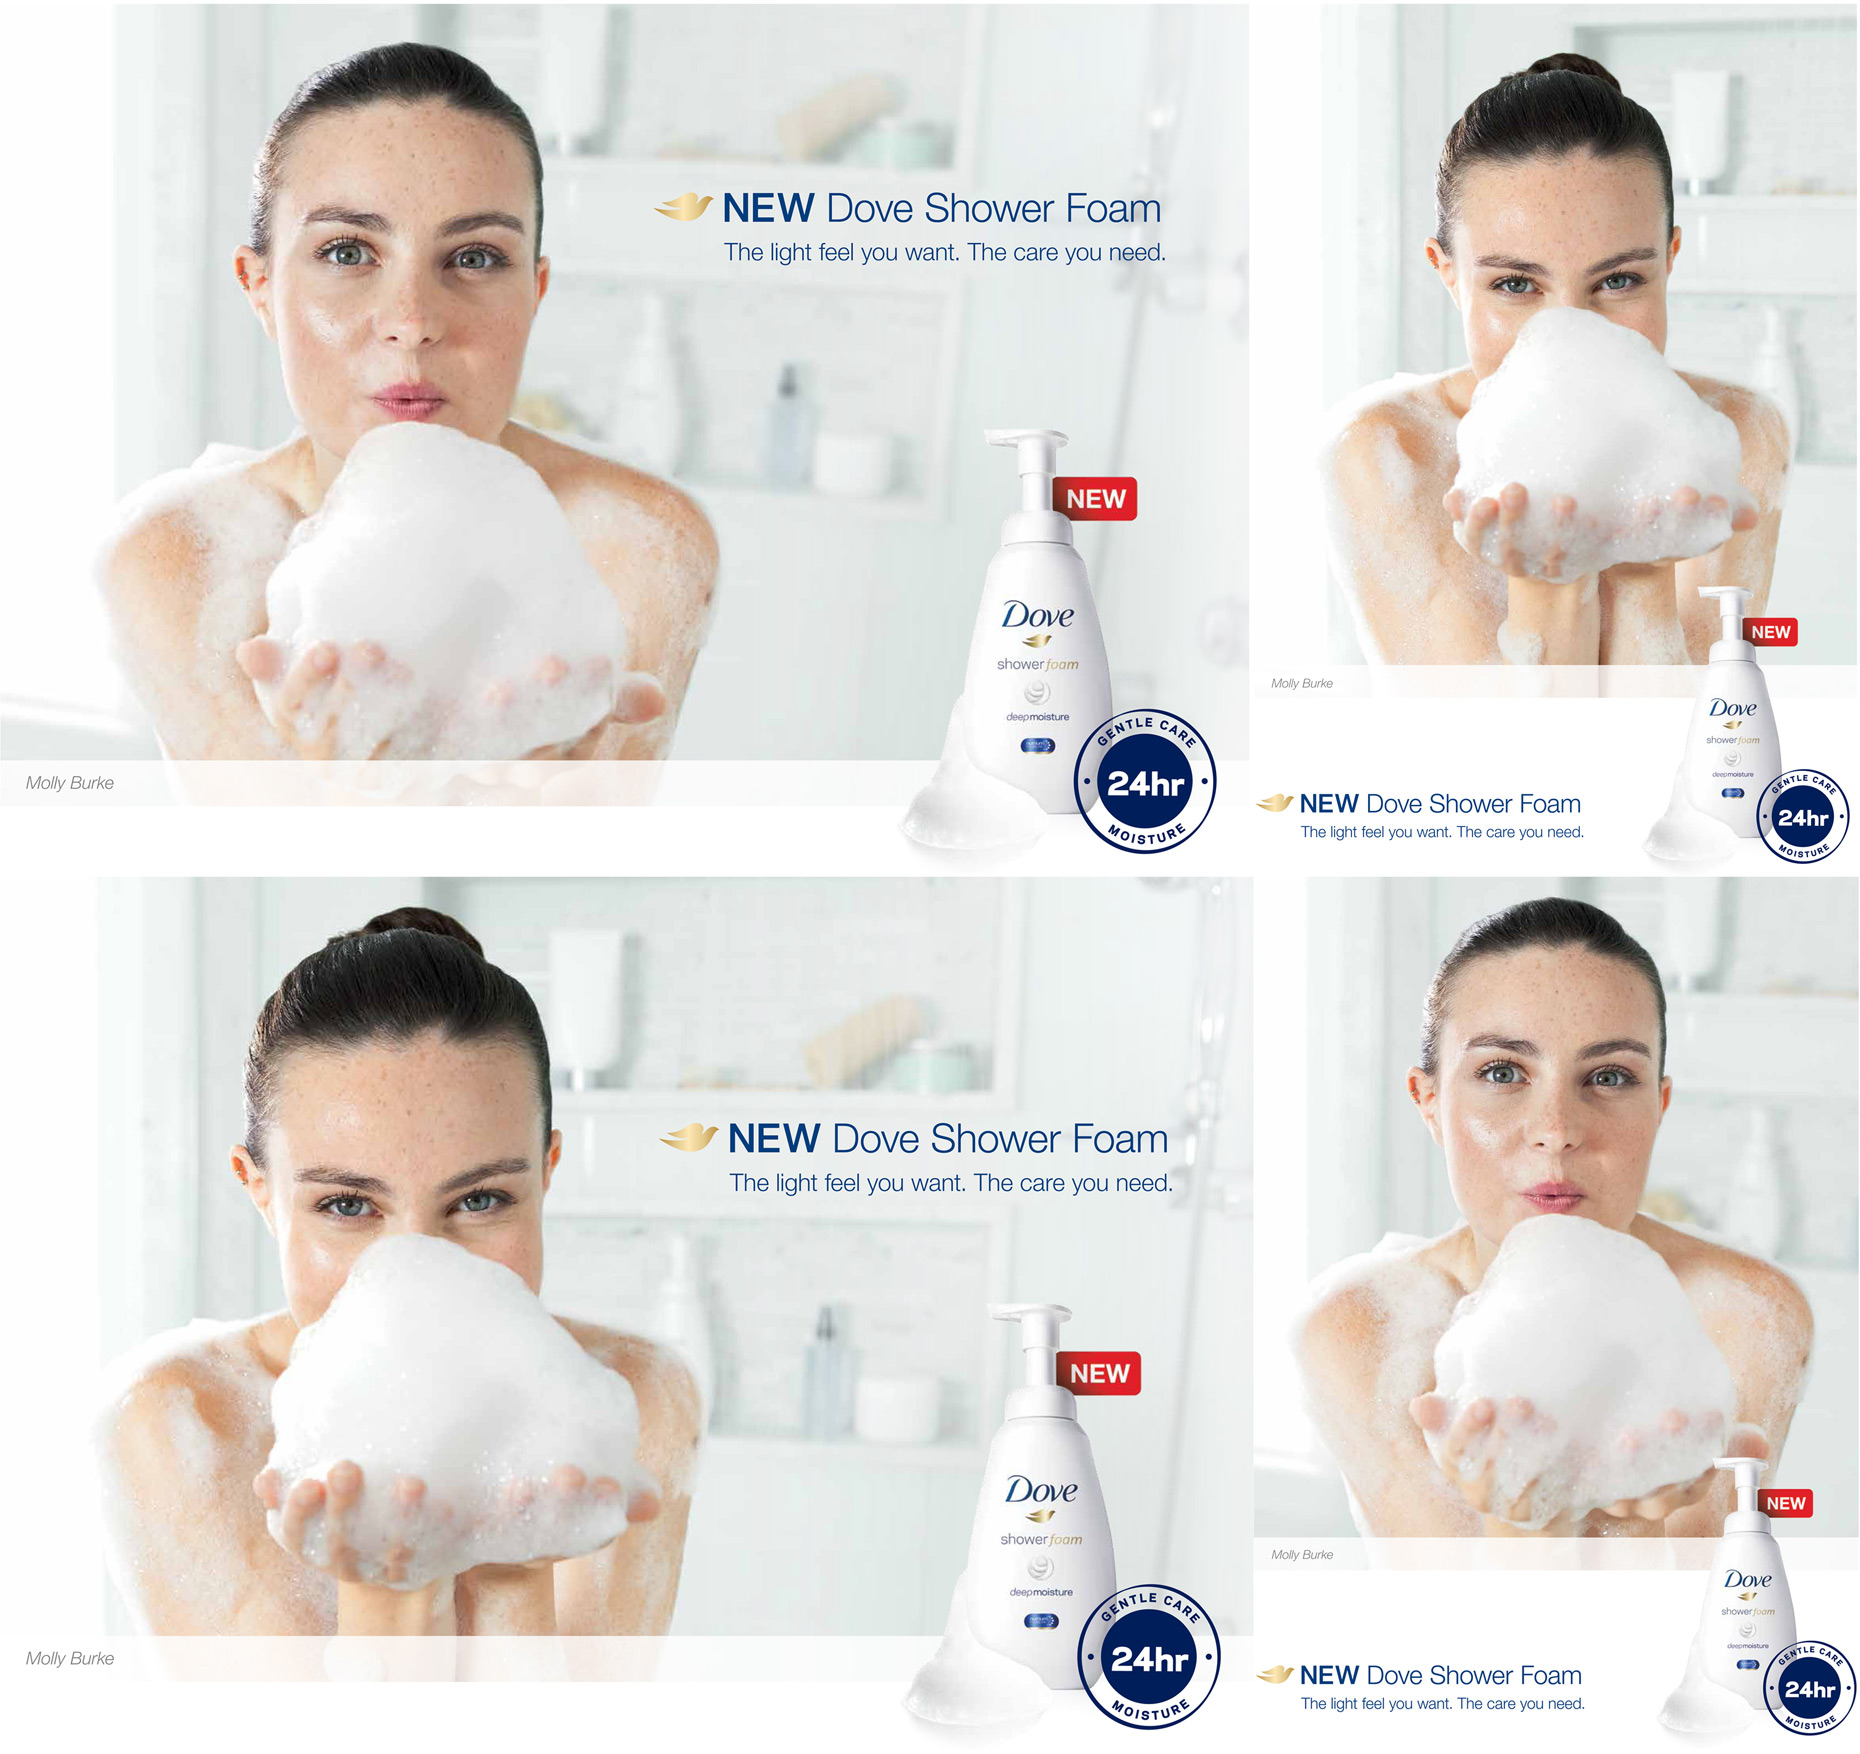 DOVE - SHOWER FOAM CAMPAIGN